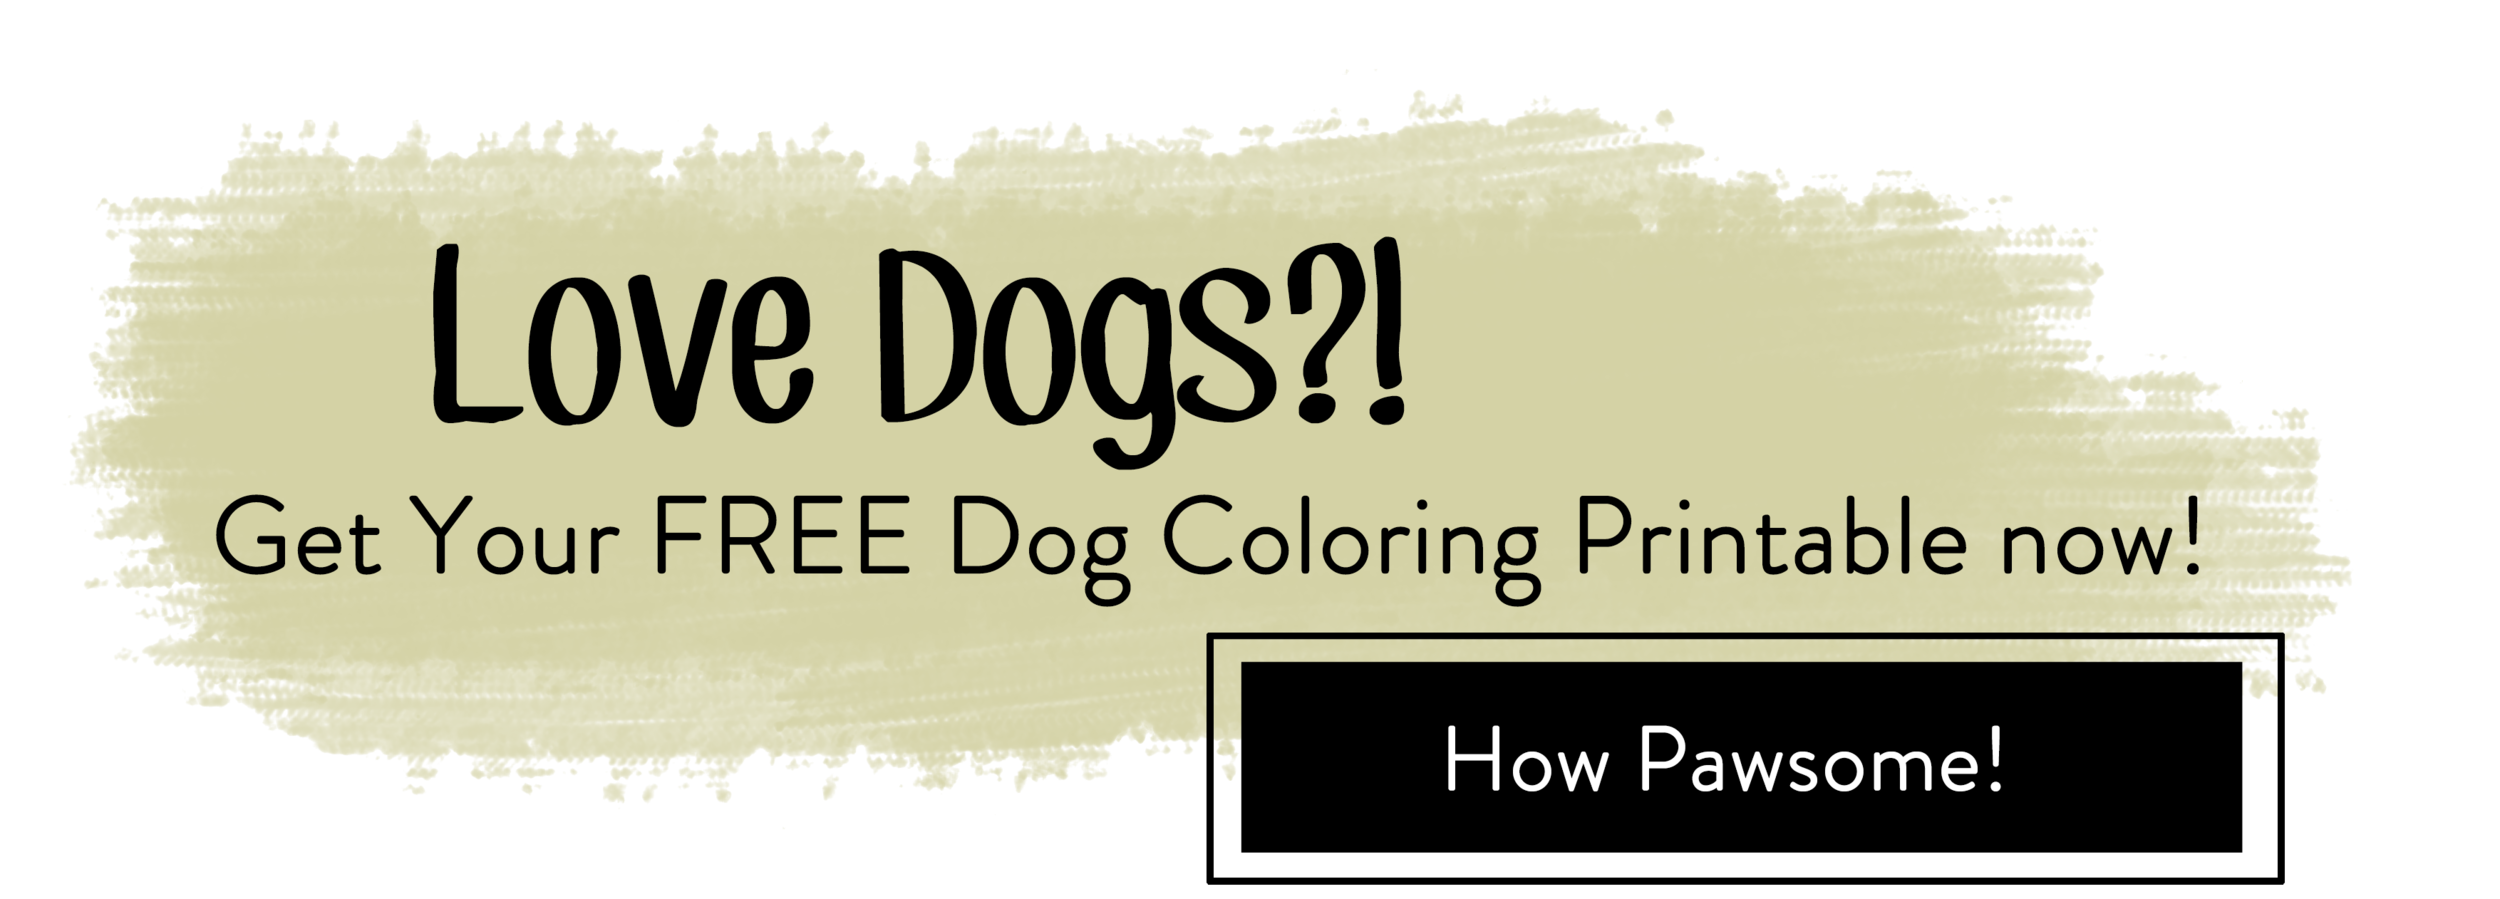 dog coloring page correct.png